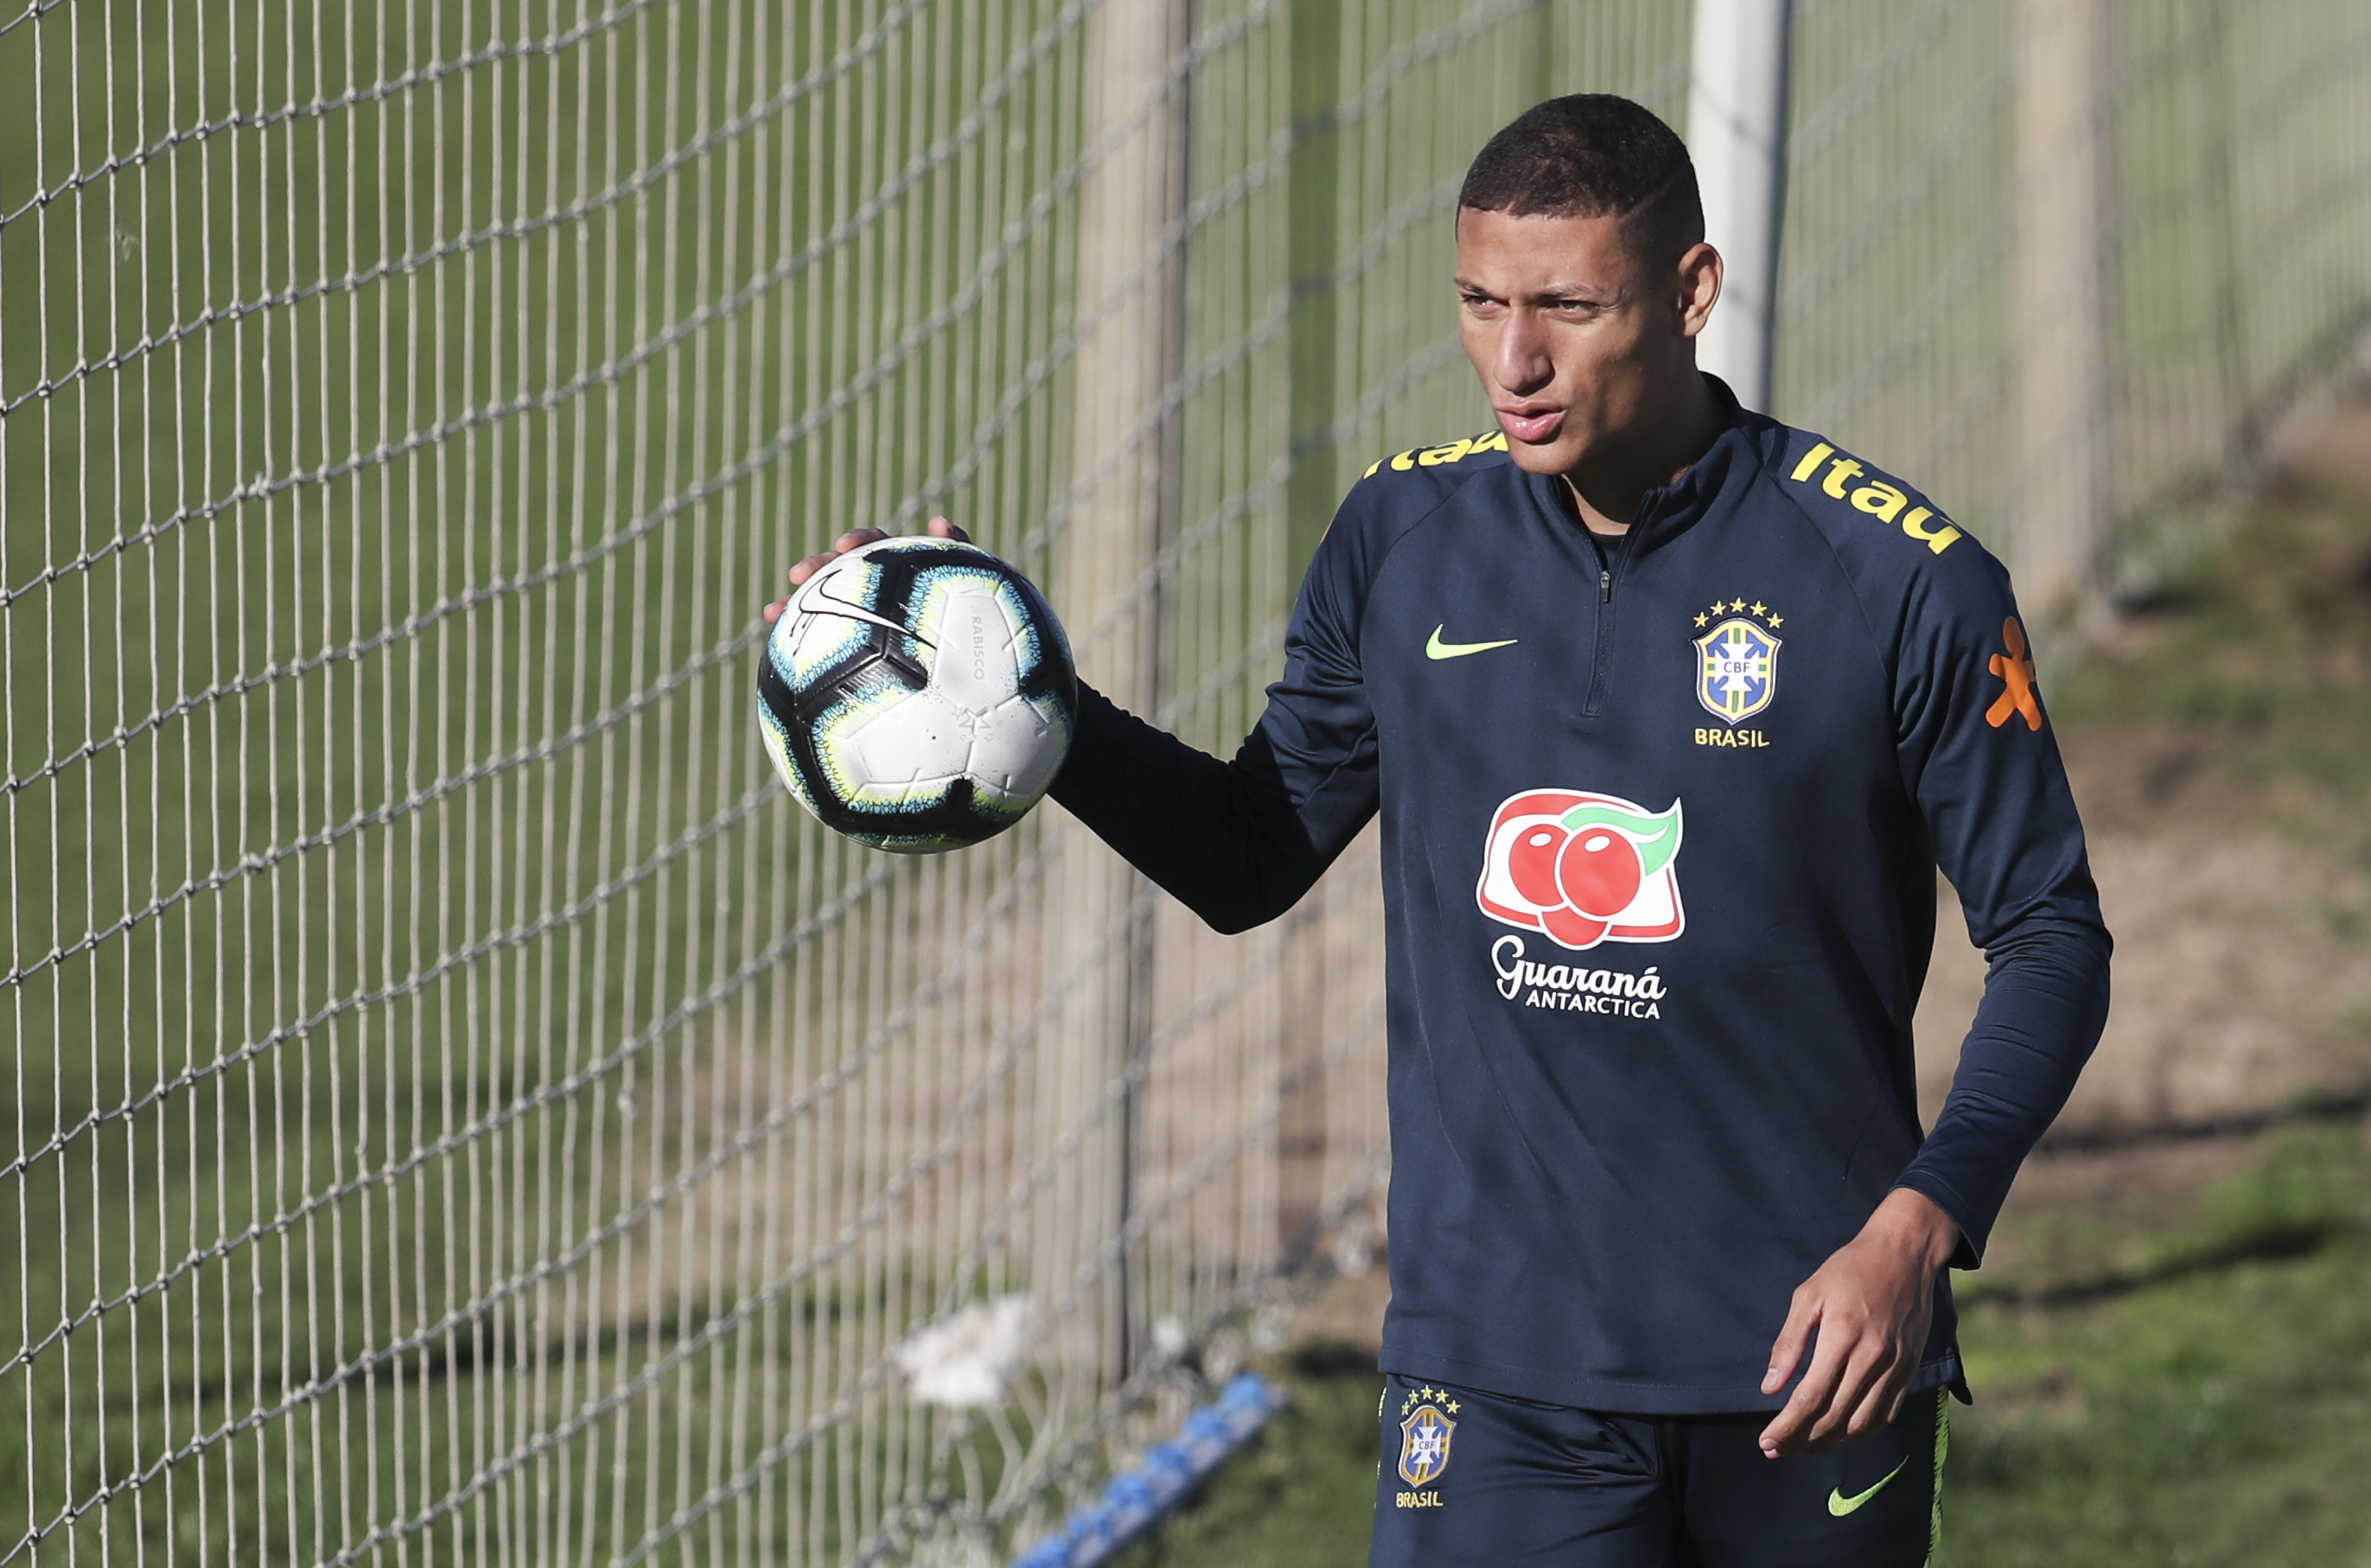 Recovering from mumps, Richarlison hopes to face Argentina